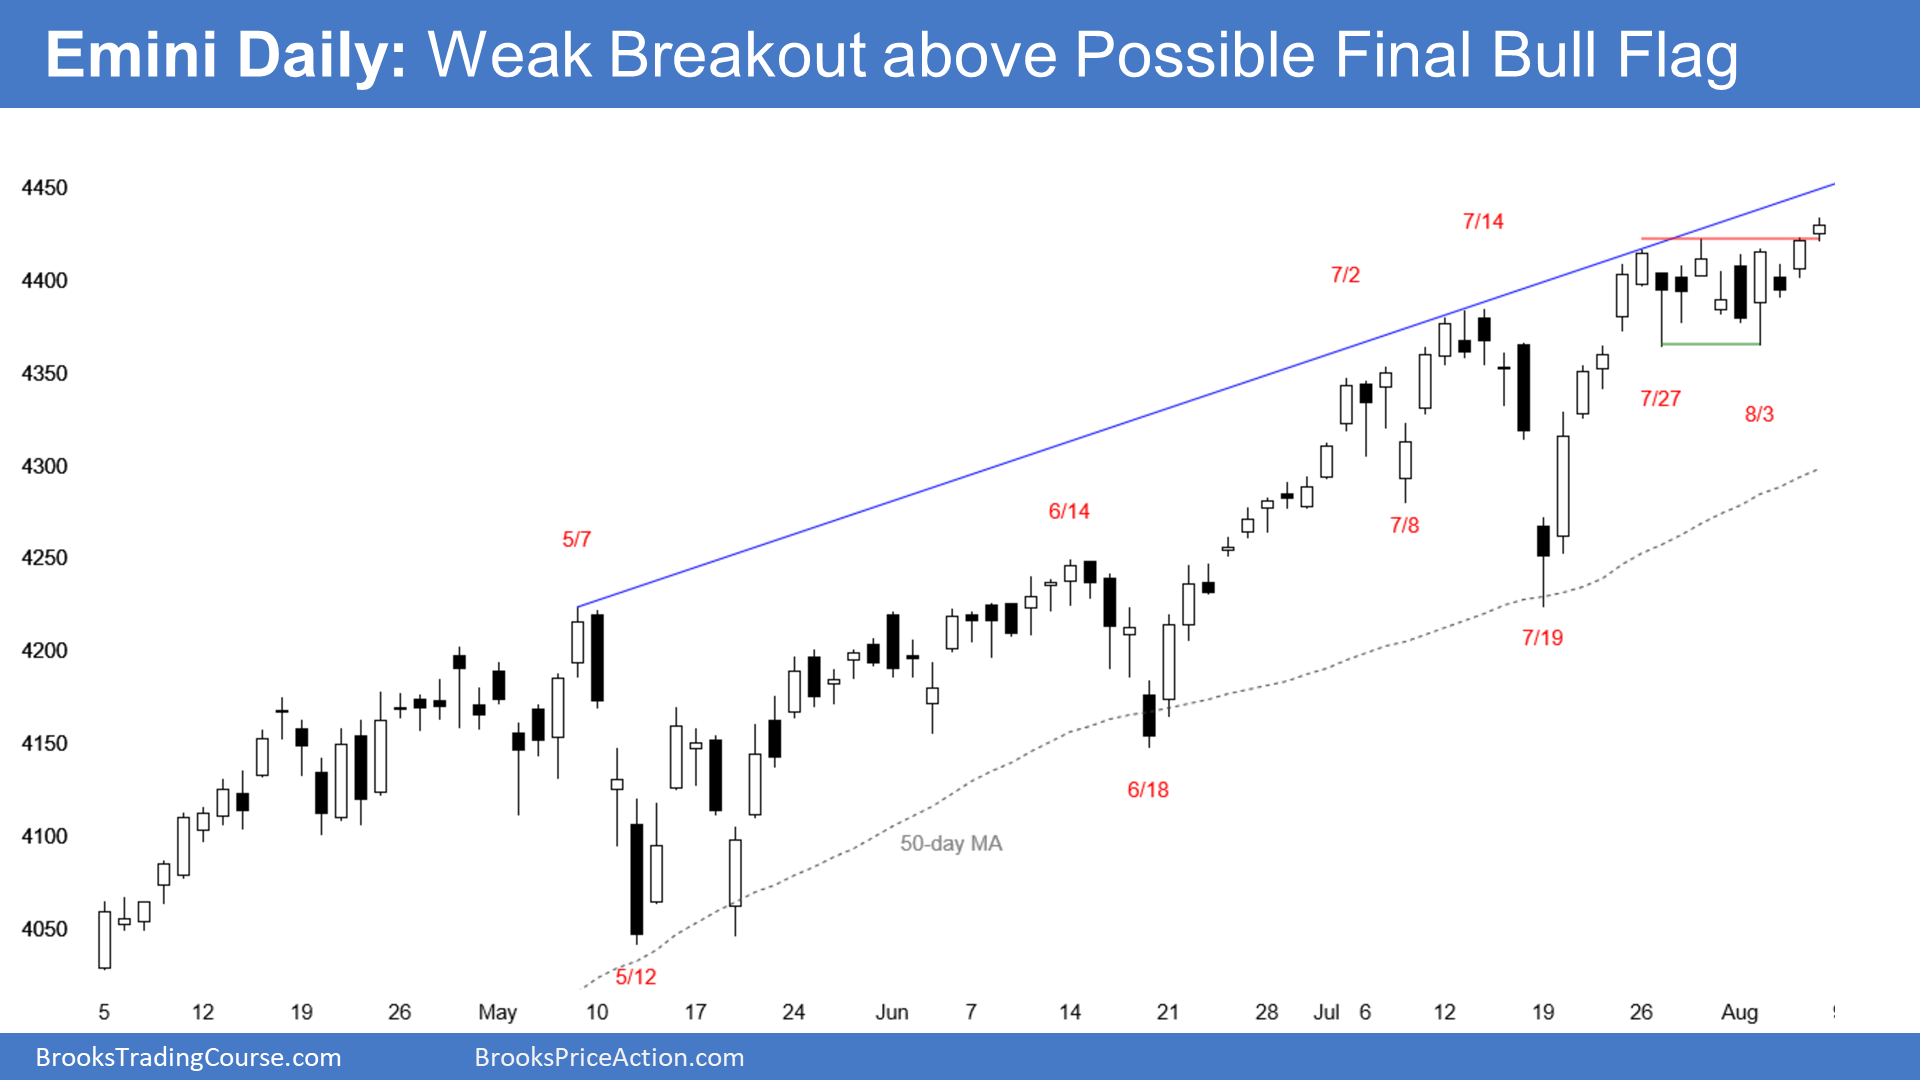 Emini S&P500 daily candlestick chart has weak breakout above possible final bull flag